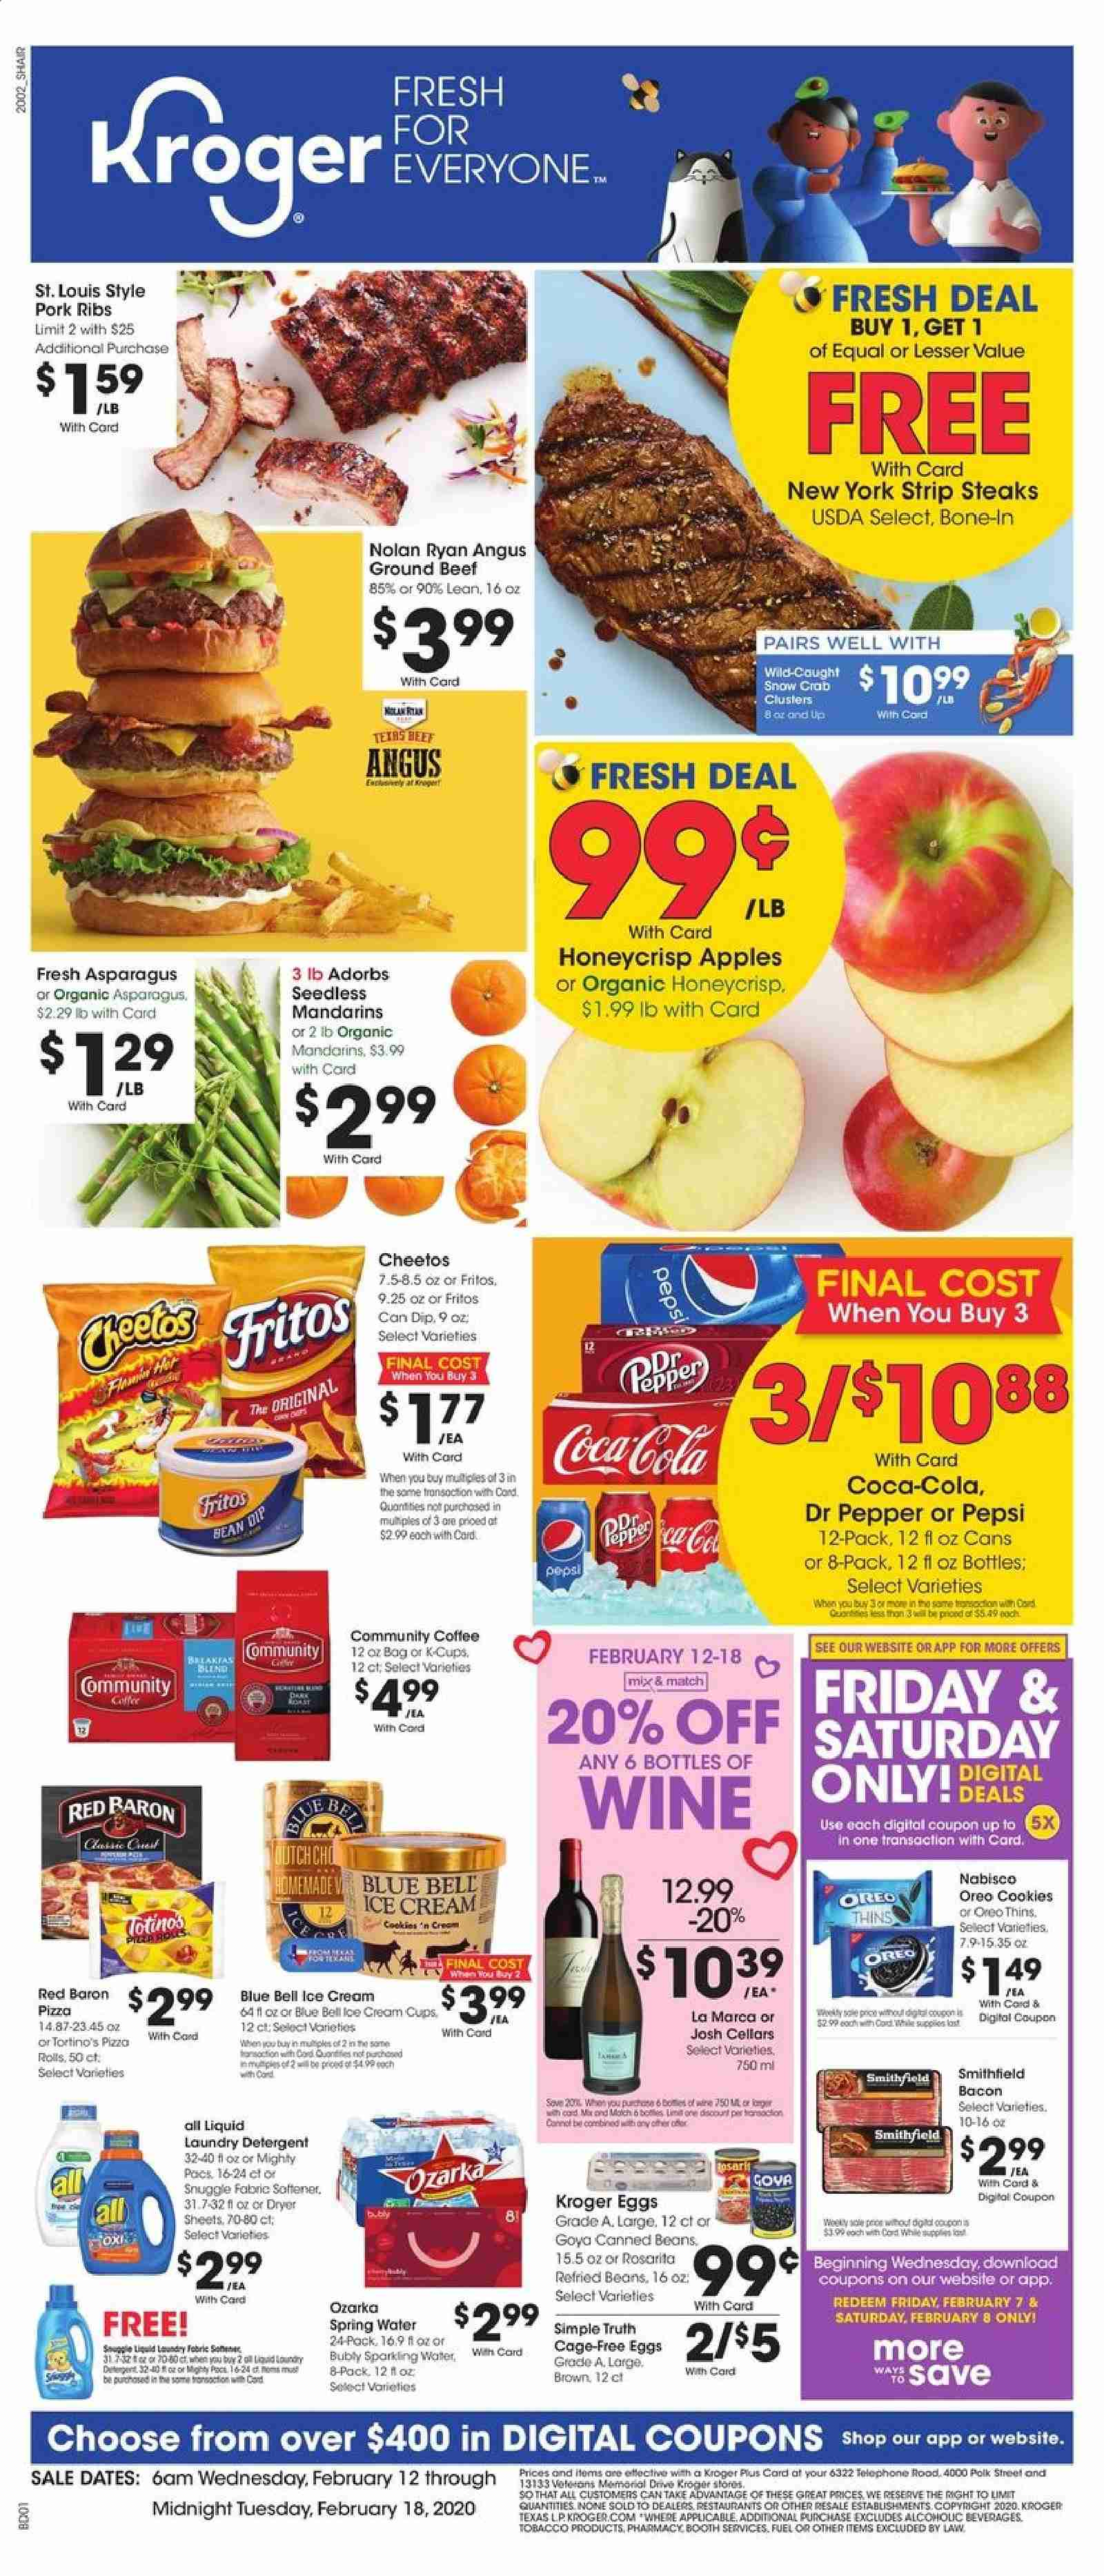 Kroger Flyer - 02.12.2020 - 02.18.2020 - Sales products - asparagus, apples, pizza rolls, rolls, cod, crab, pizza, bacon, Oreo, eggs, ice cream, beans, cookies, Cheetos, refried beans, Fritos, pepper, Coca-Cola, Pepsi, Dr. Pepper, spring water, sparkling water, water, coffee, wine, beef meat, ground beef, pork meat, pork ribs, detergent, Snuggle, softener, laundry detergent, fuel, ribs, spring. Page 1.